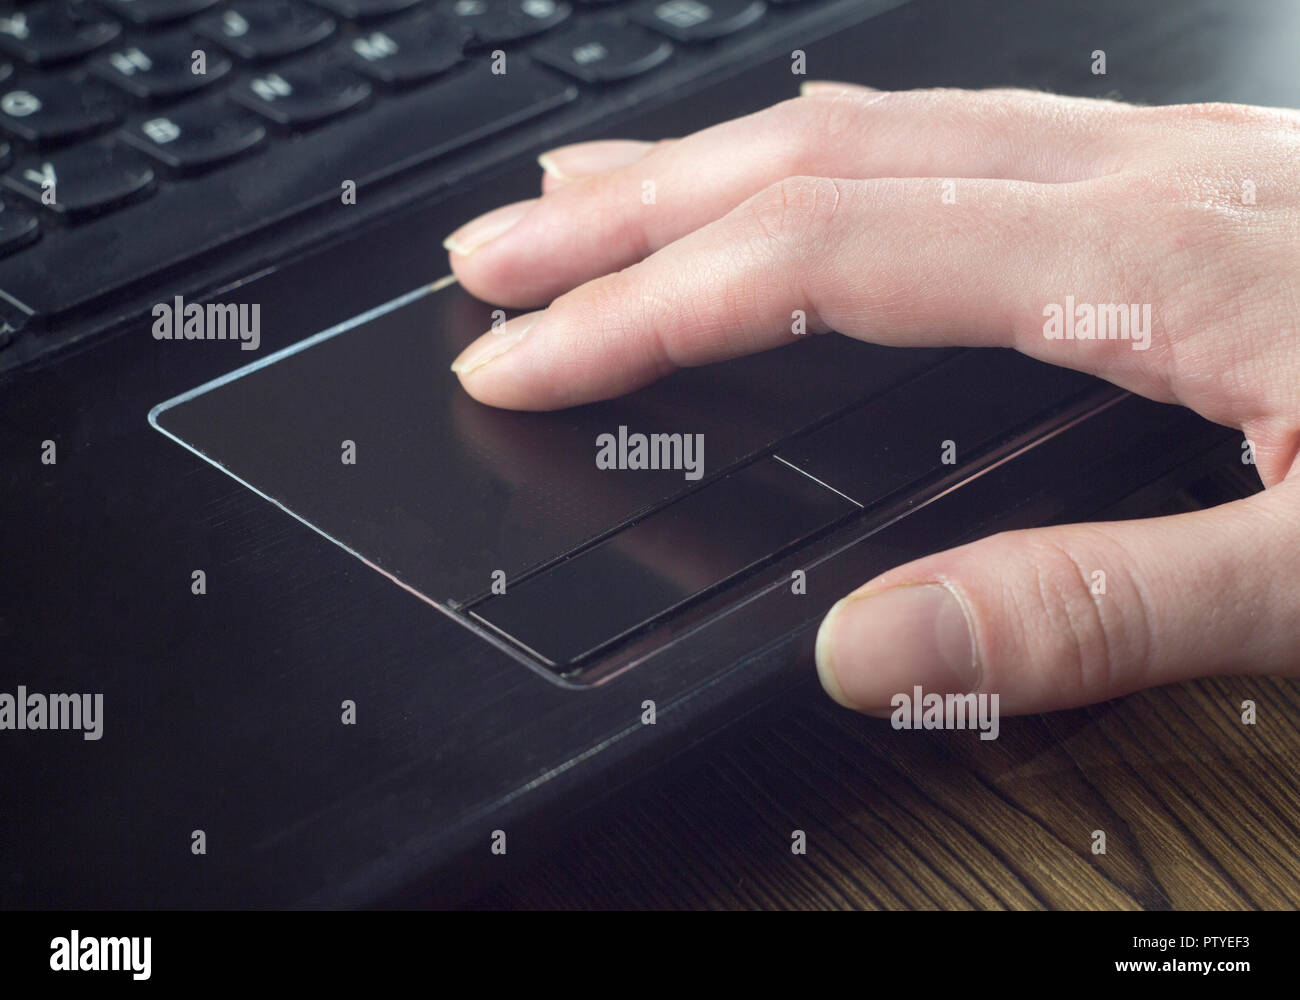 Hand on the laptop's touchpad - Stock Image